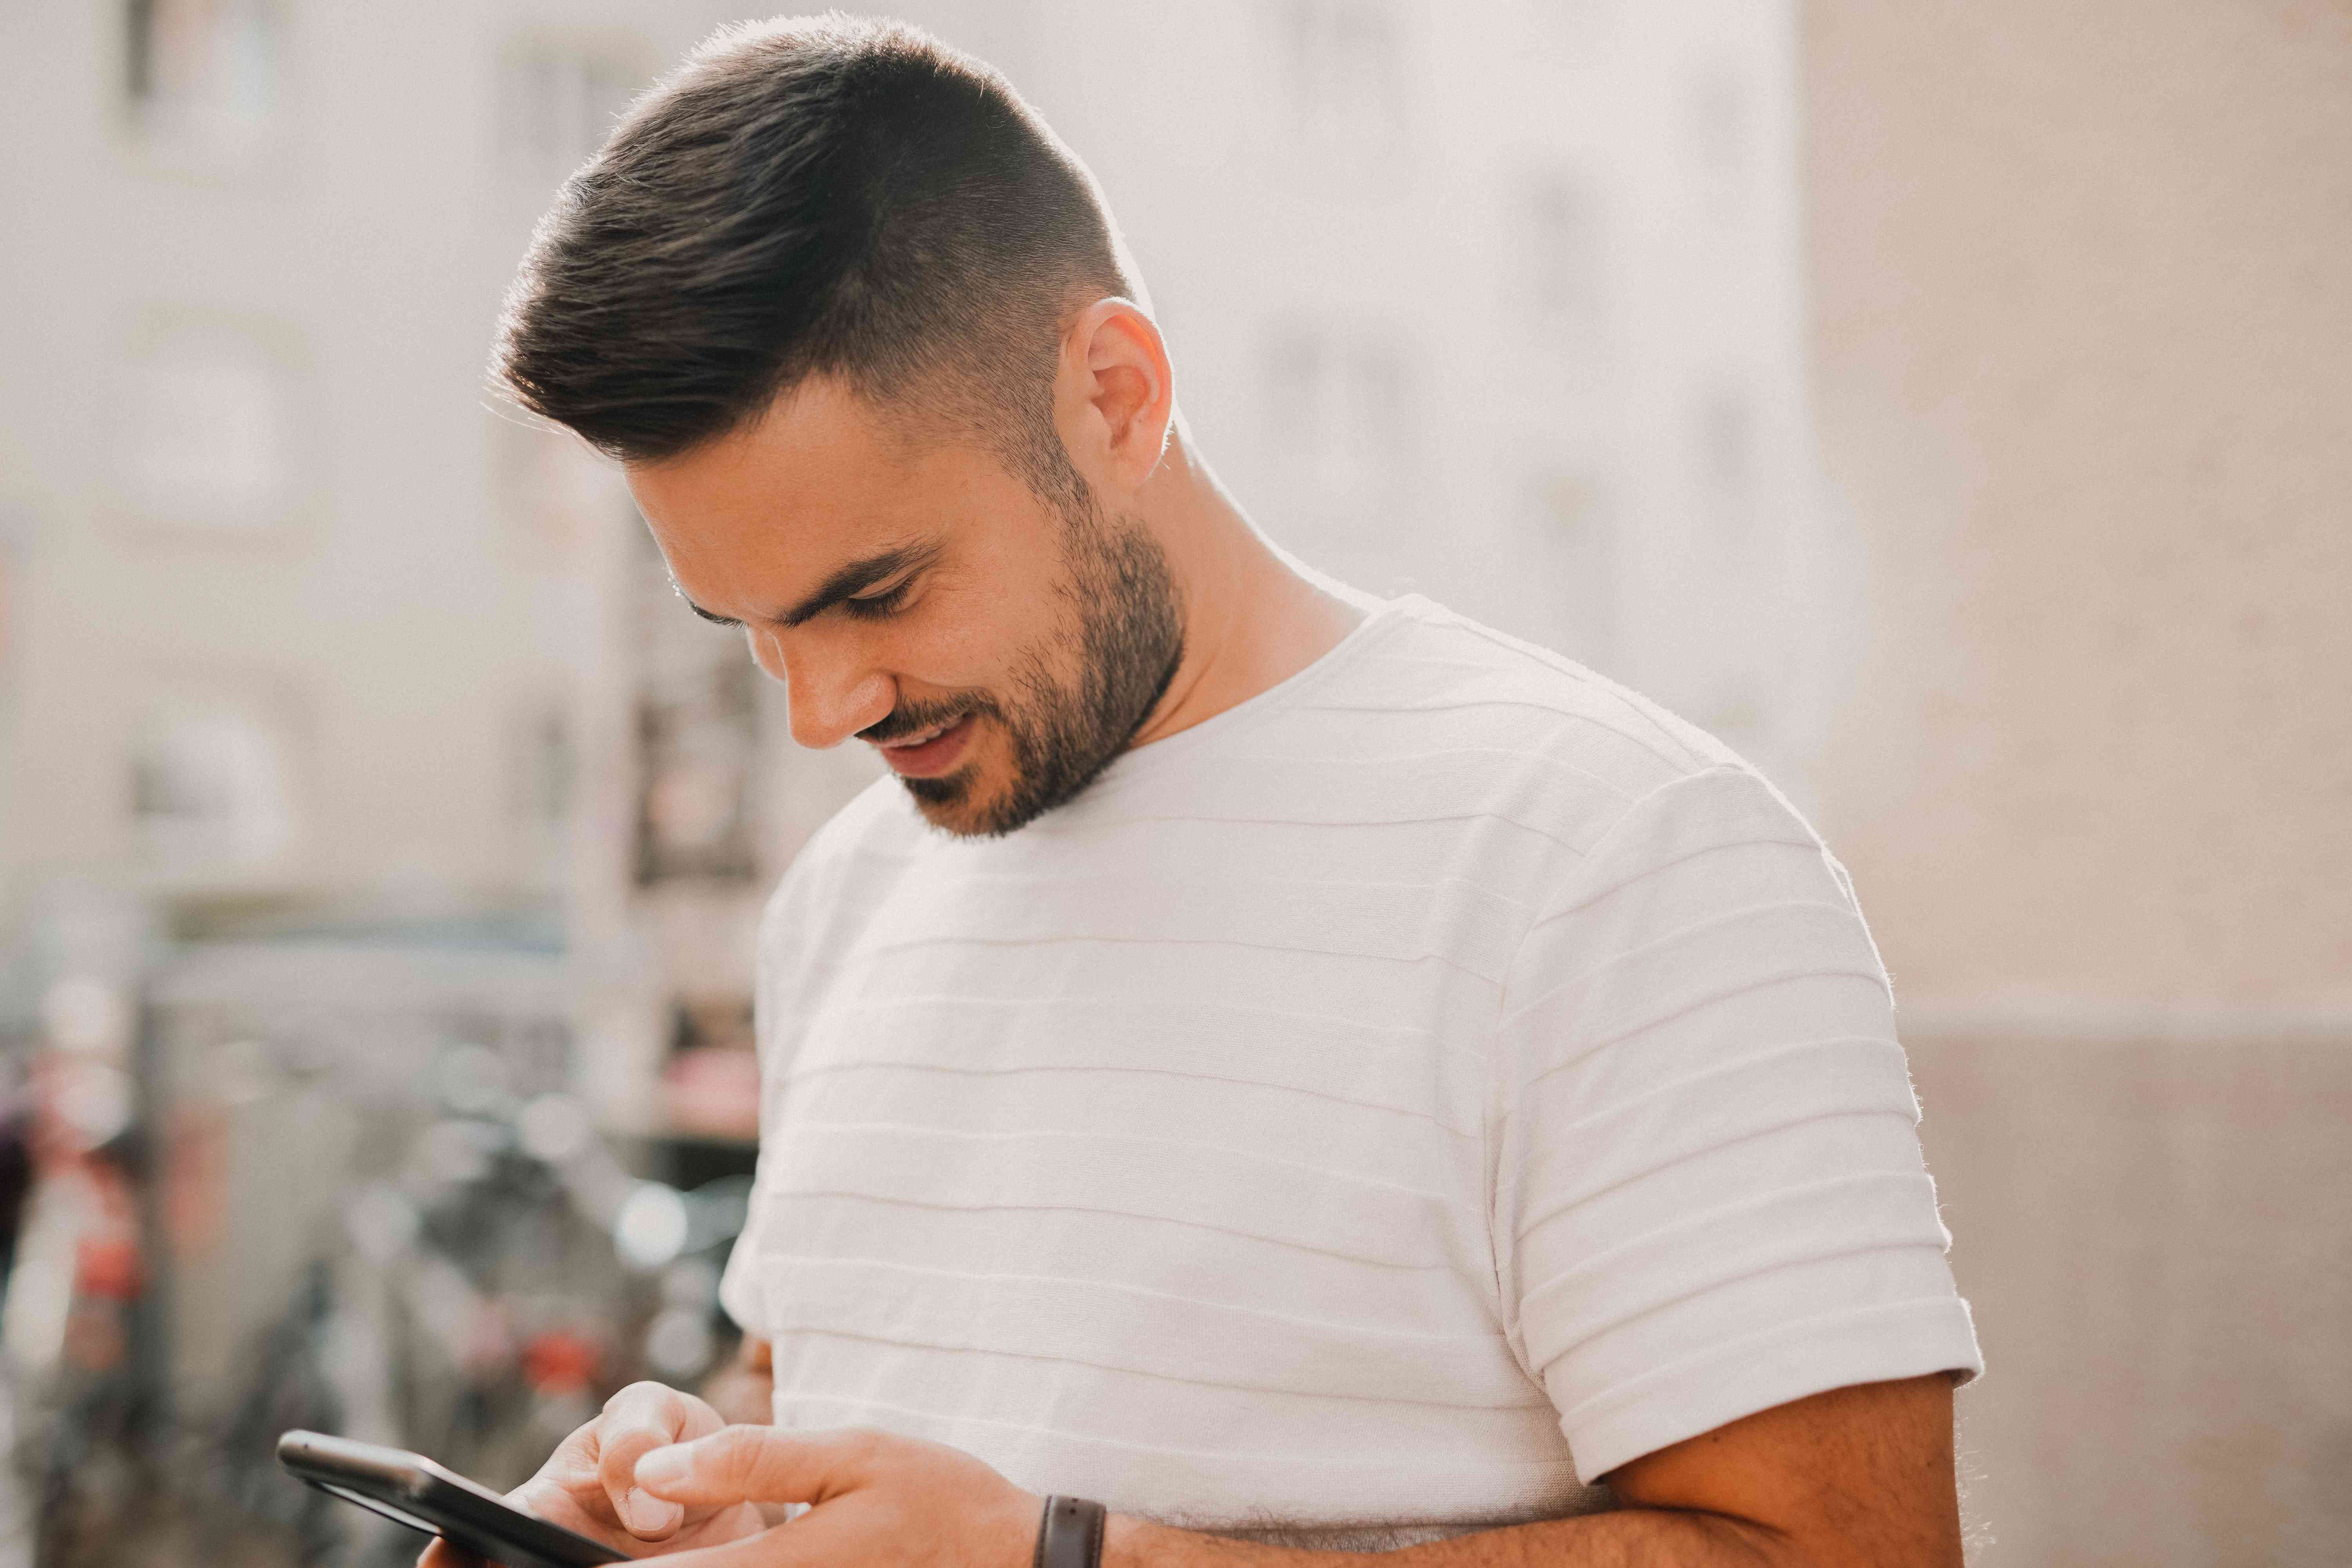 A person sending a message on a smartphone.